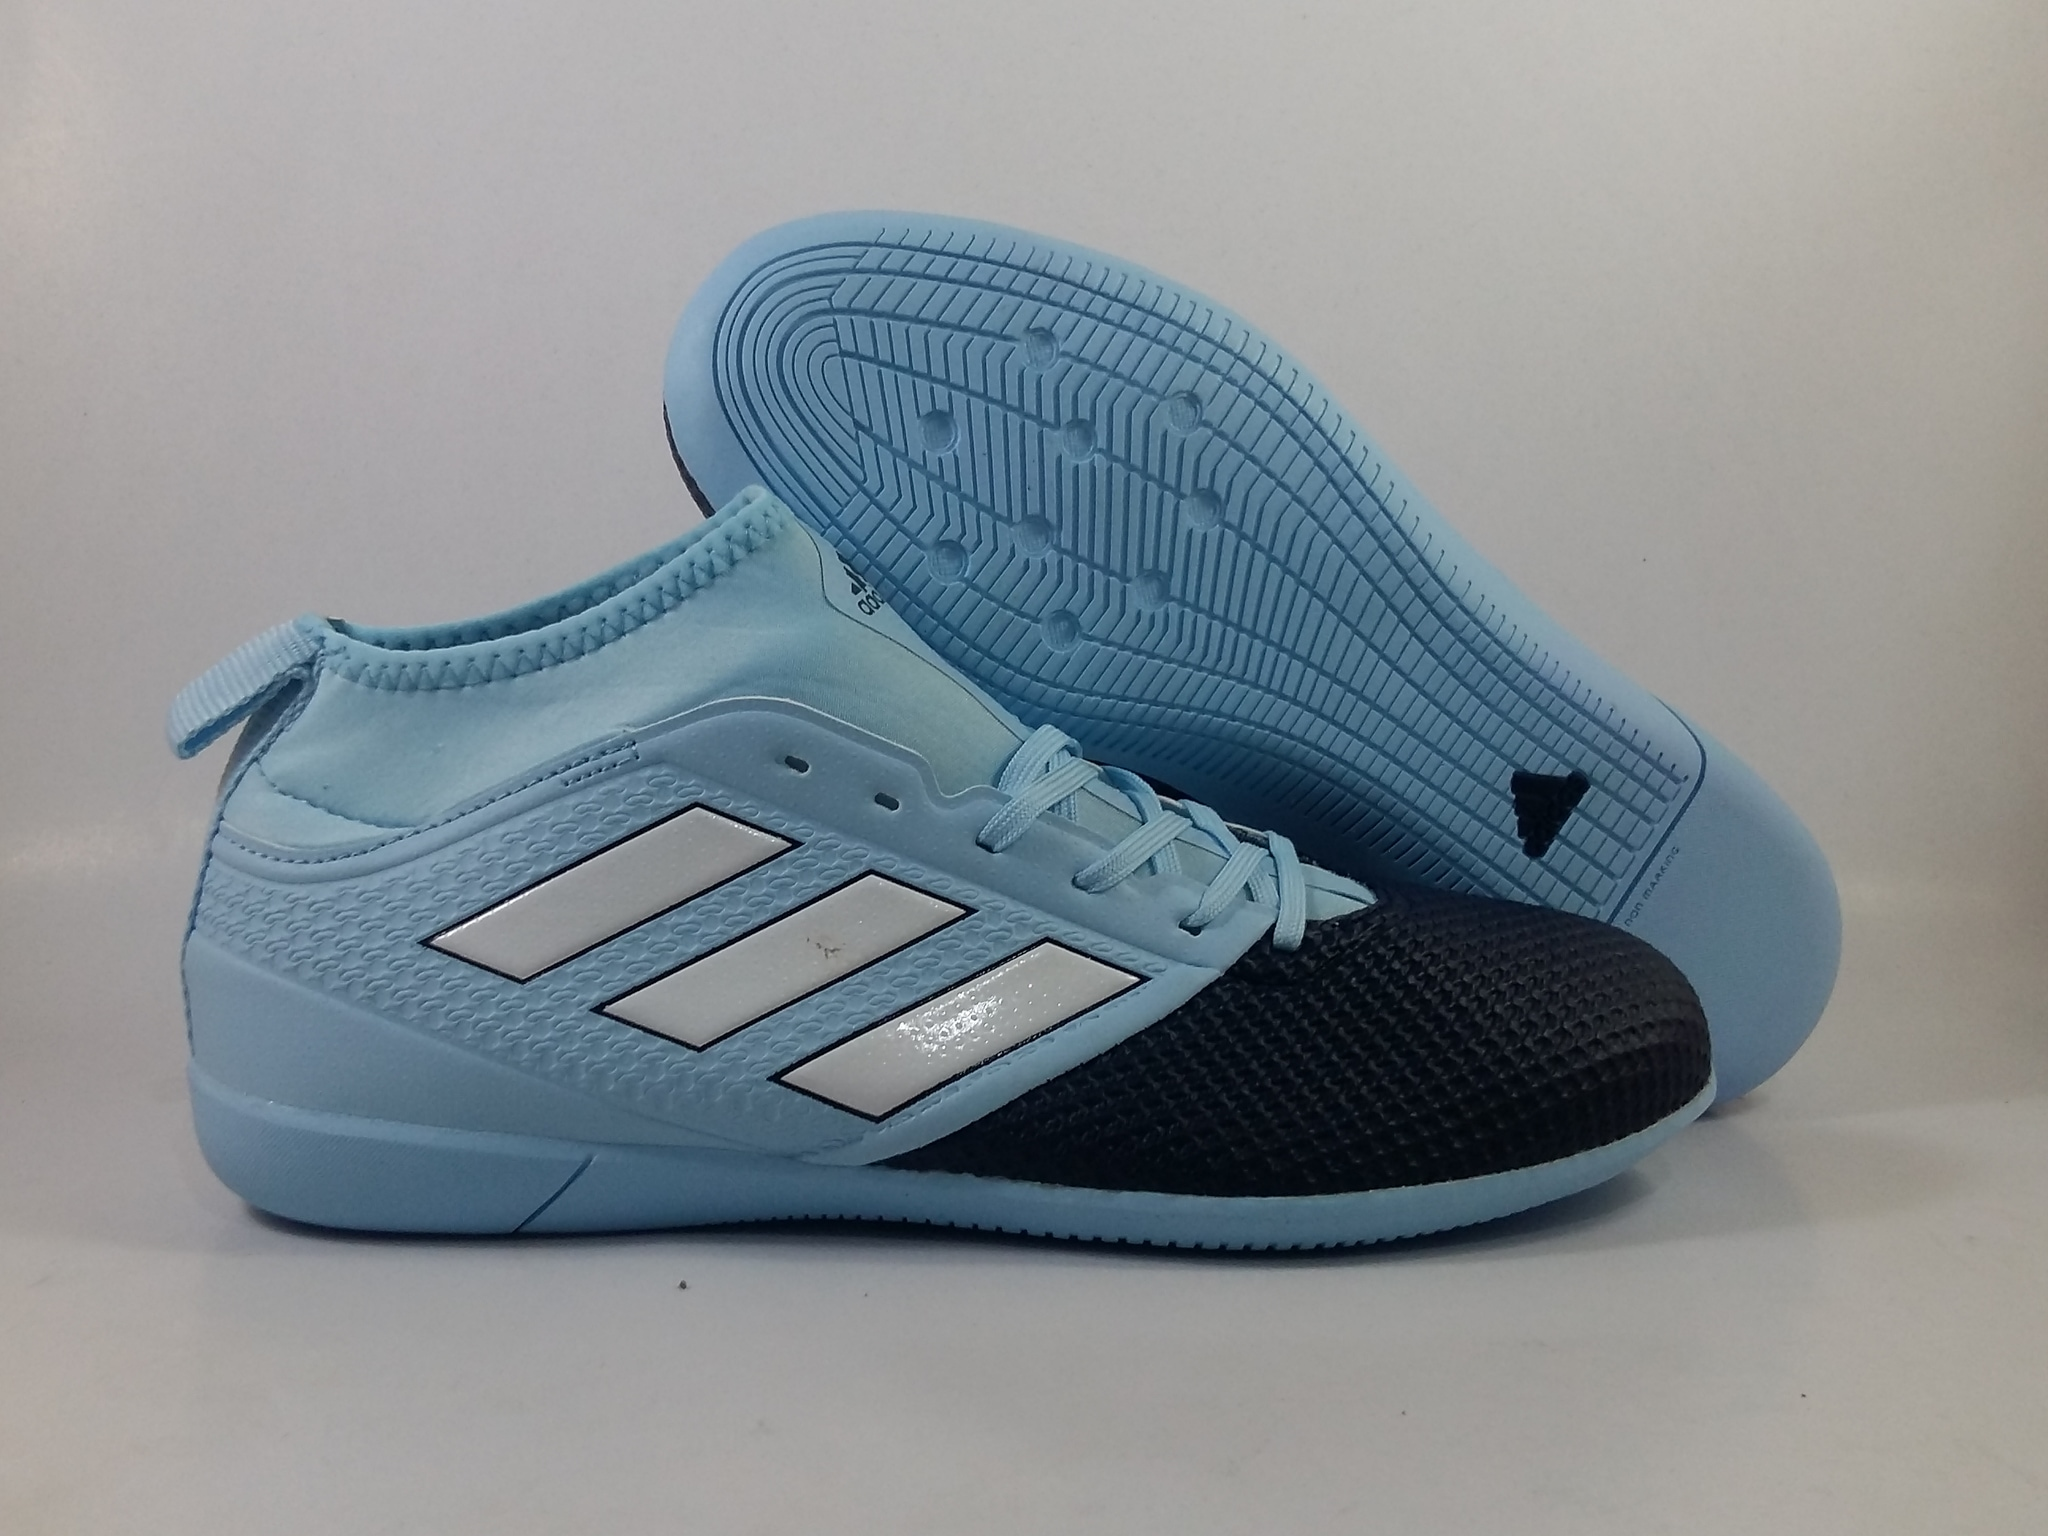 9f937c6d9 ... discount code for jual sepatu futsal adidas ace 17.3 primemesh sky blue  black kick nd shoes